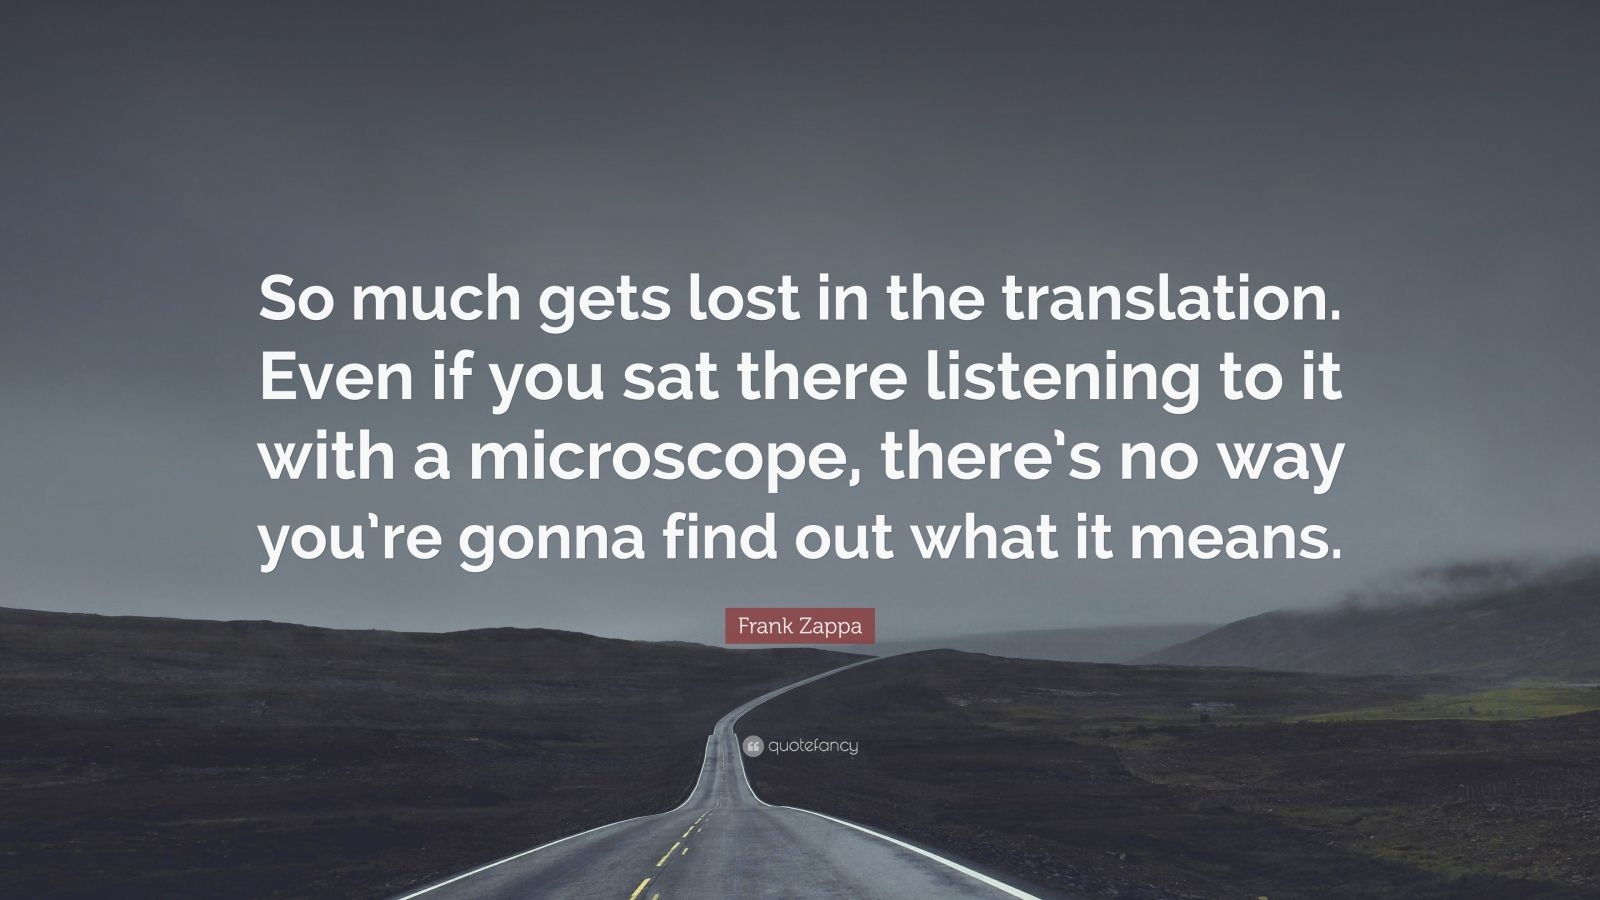 """Frank Zappa Quote: """"So much gets lost in the translation. Even if you sat there listening to it with a microscope, there's no way you're gonna find out what it means."""""""